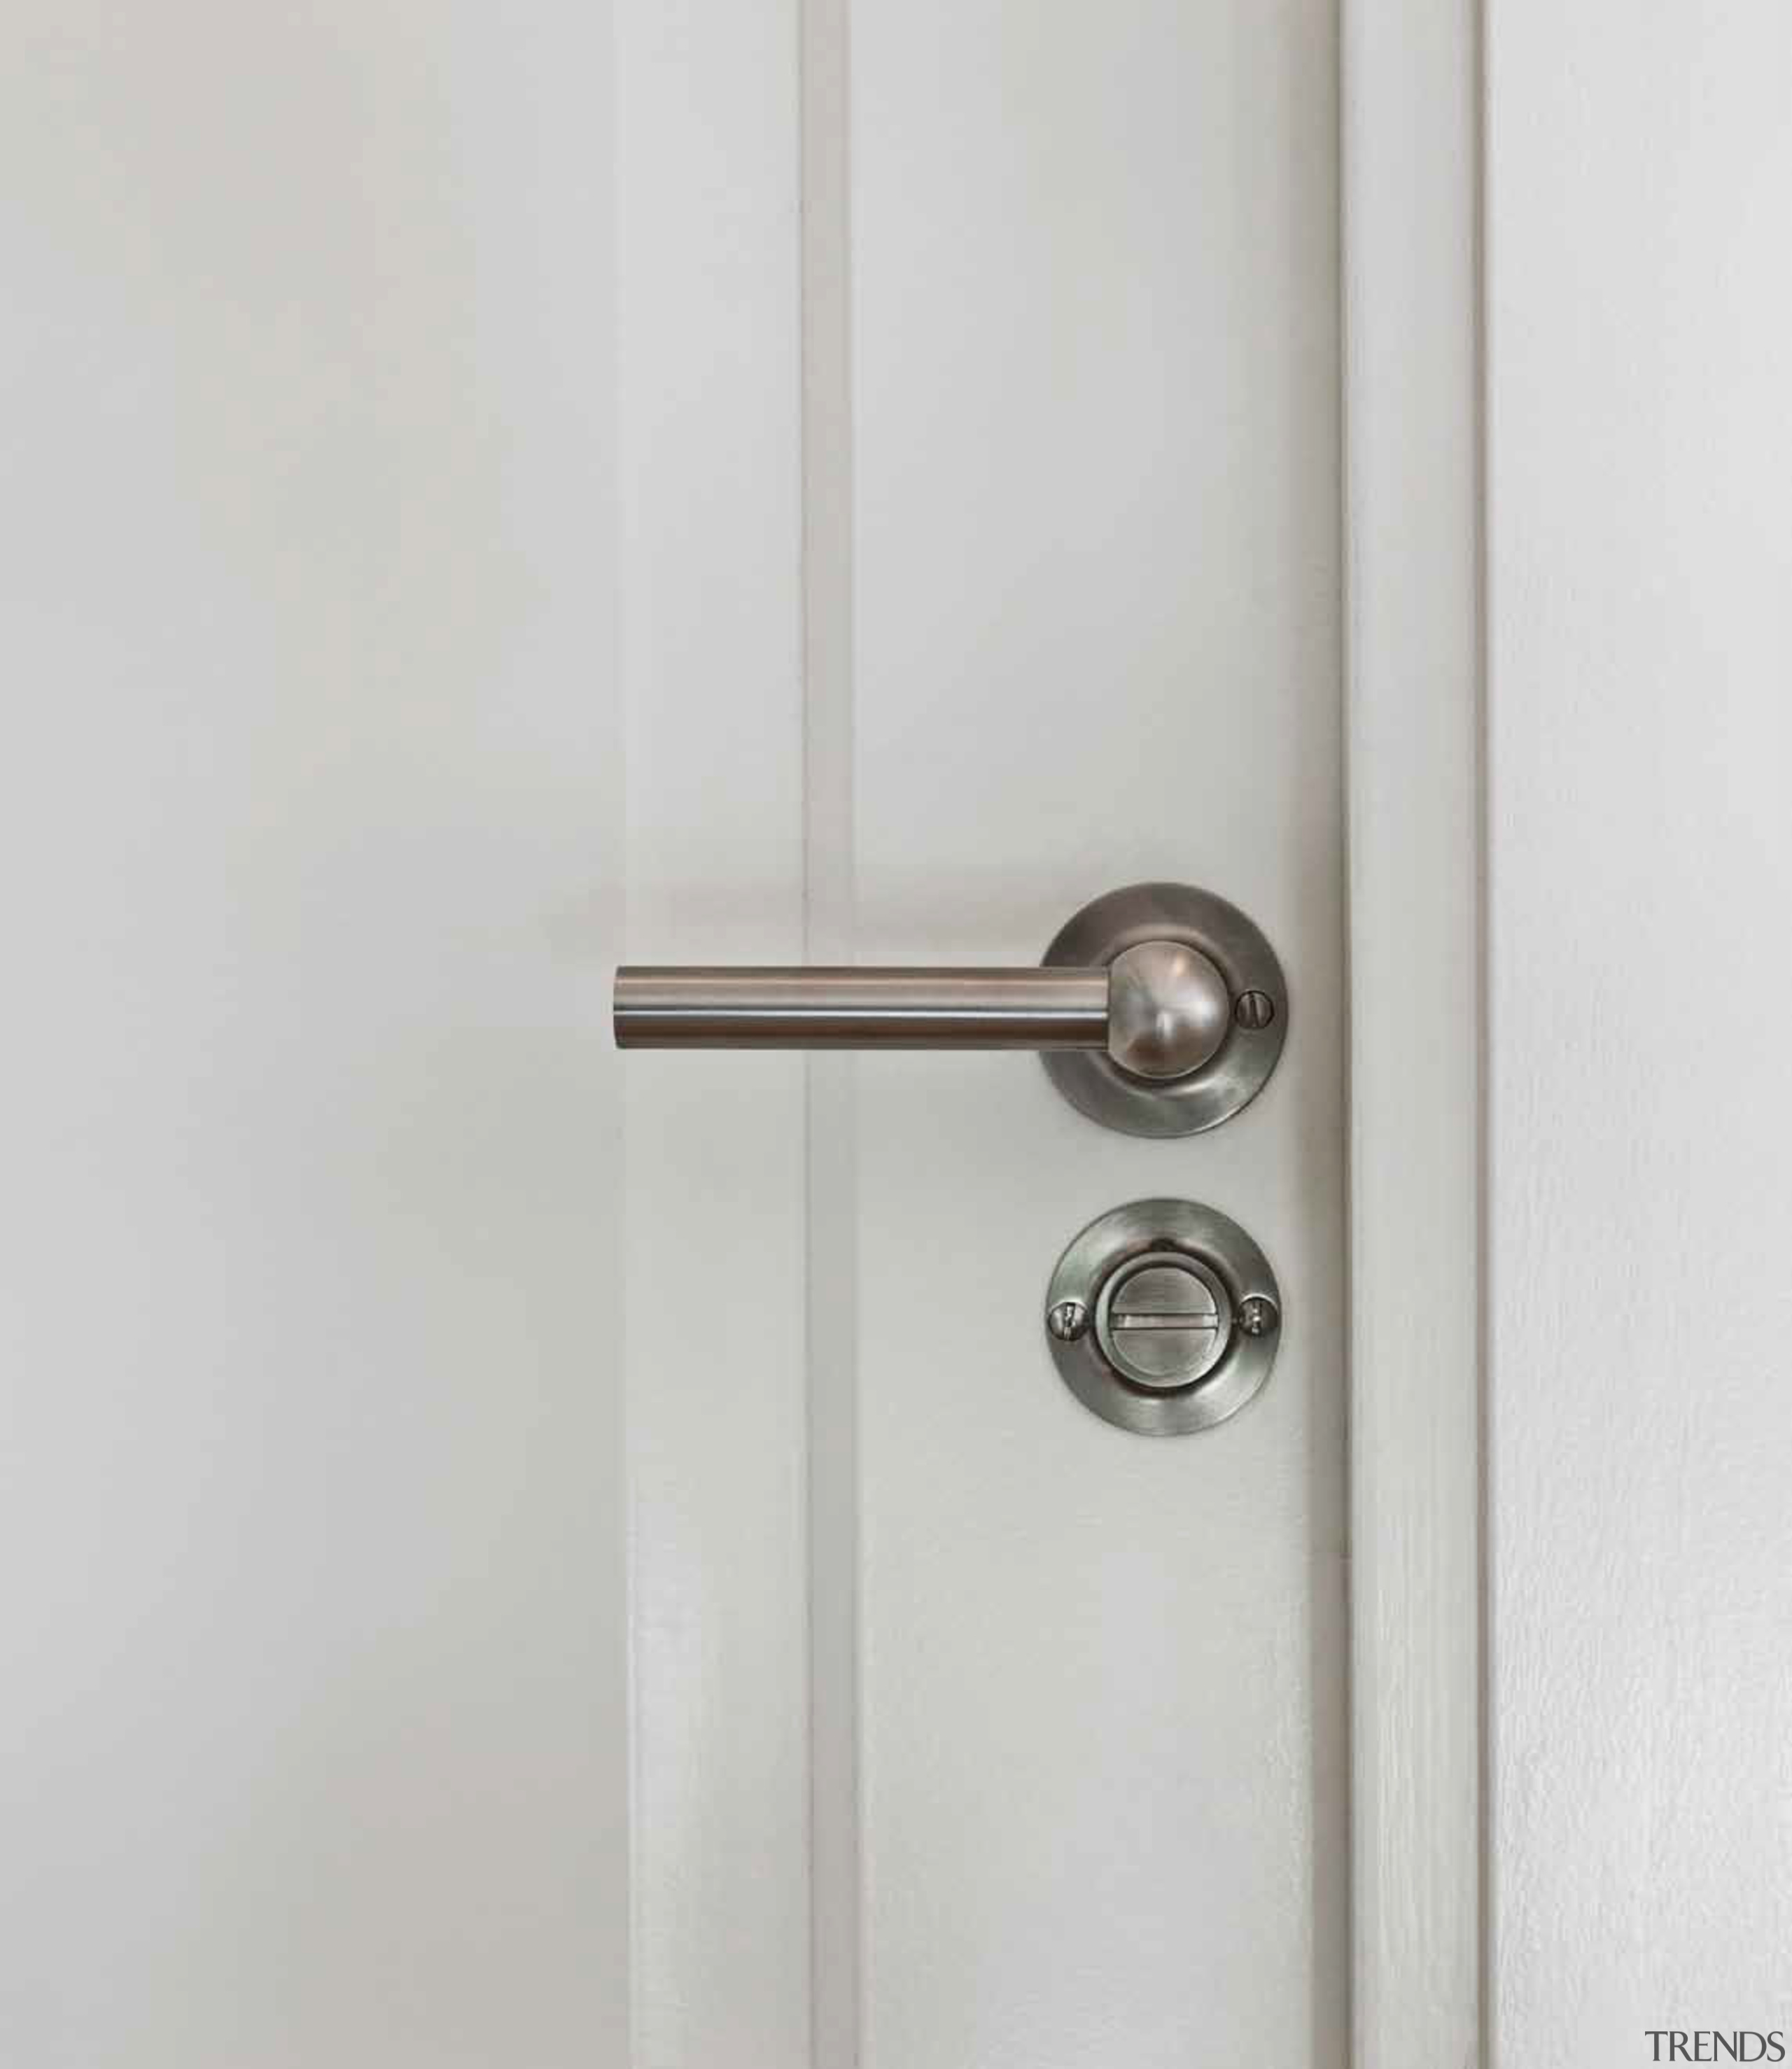 FVL85/40 - Solid Unsprung Lever Handle Attached to door handle, hinge, lock, product design, white, gray